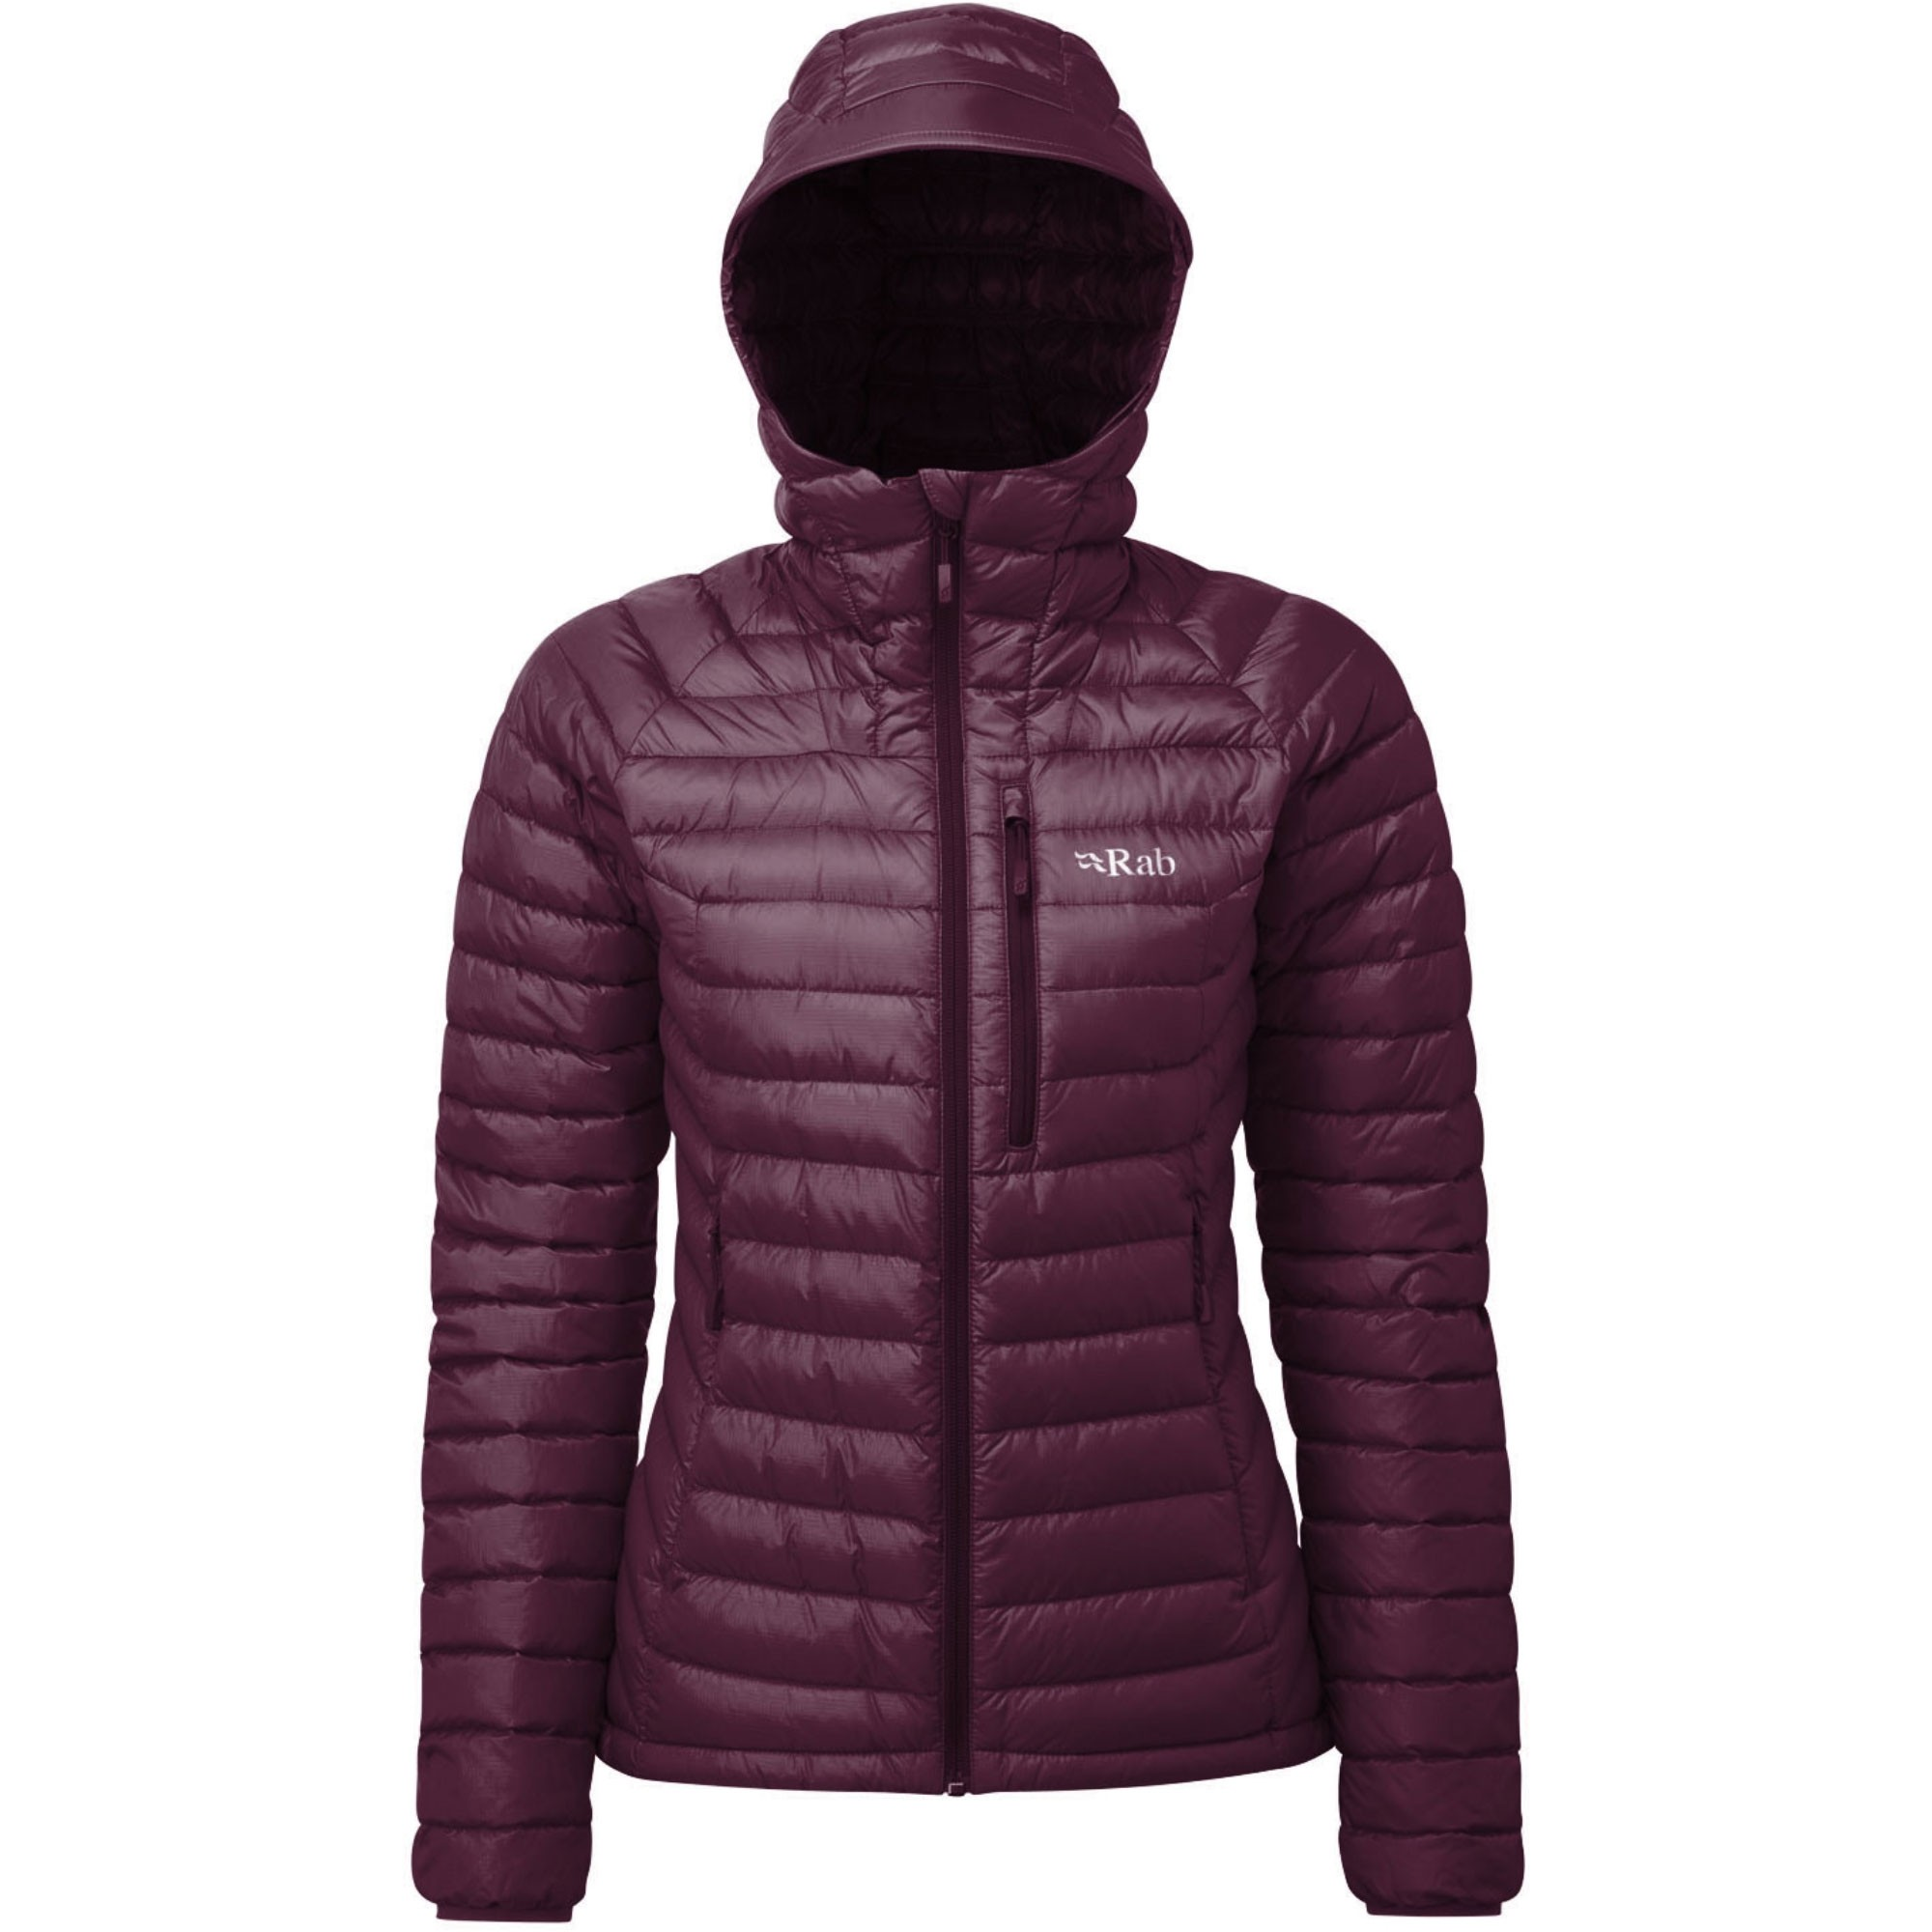 Rab Microlight Alpine Women's Down Jacket - Eggplant